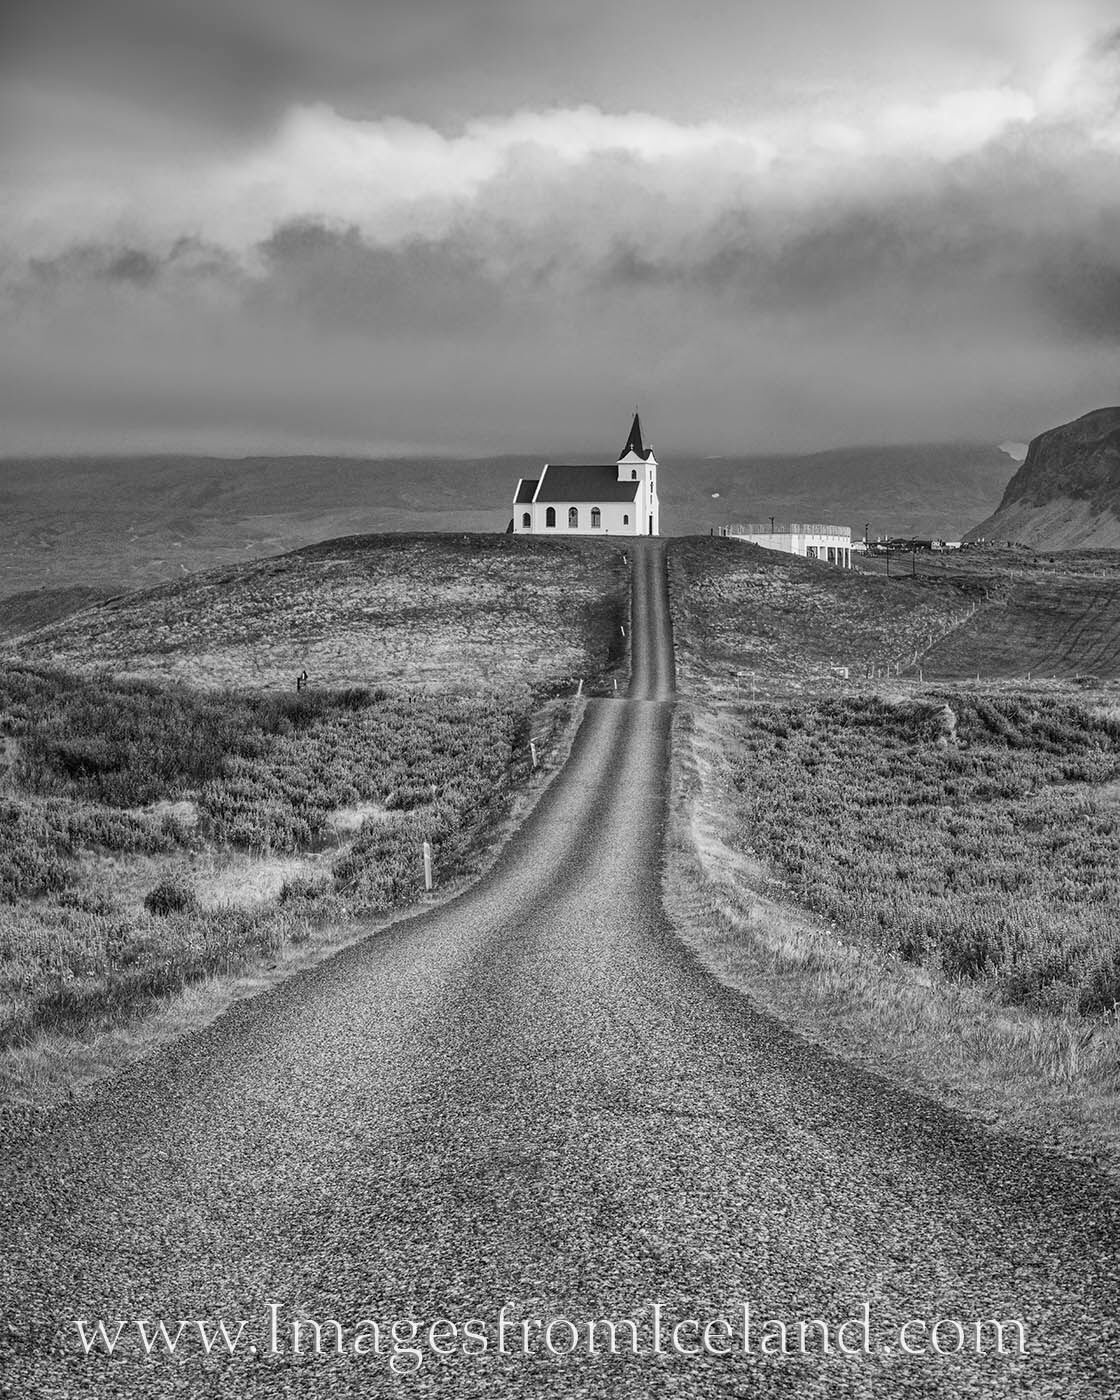 From the Snæfellsnes Peninsula, Ingjaldshólskirkja is a famous and oft-photographed church atop a small hill. In the summer...